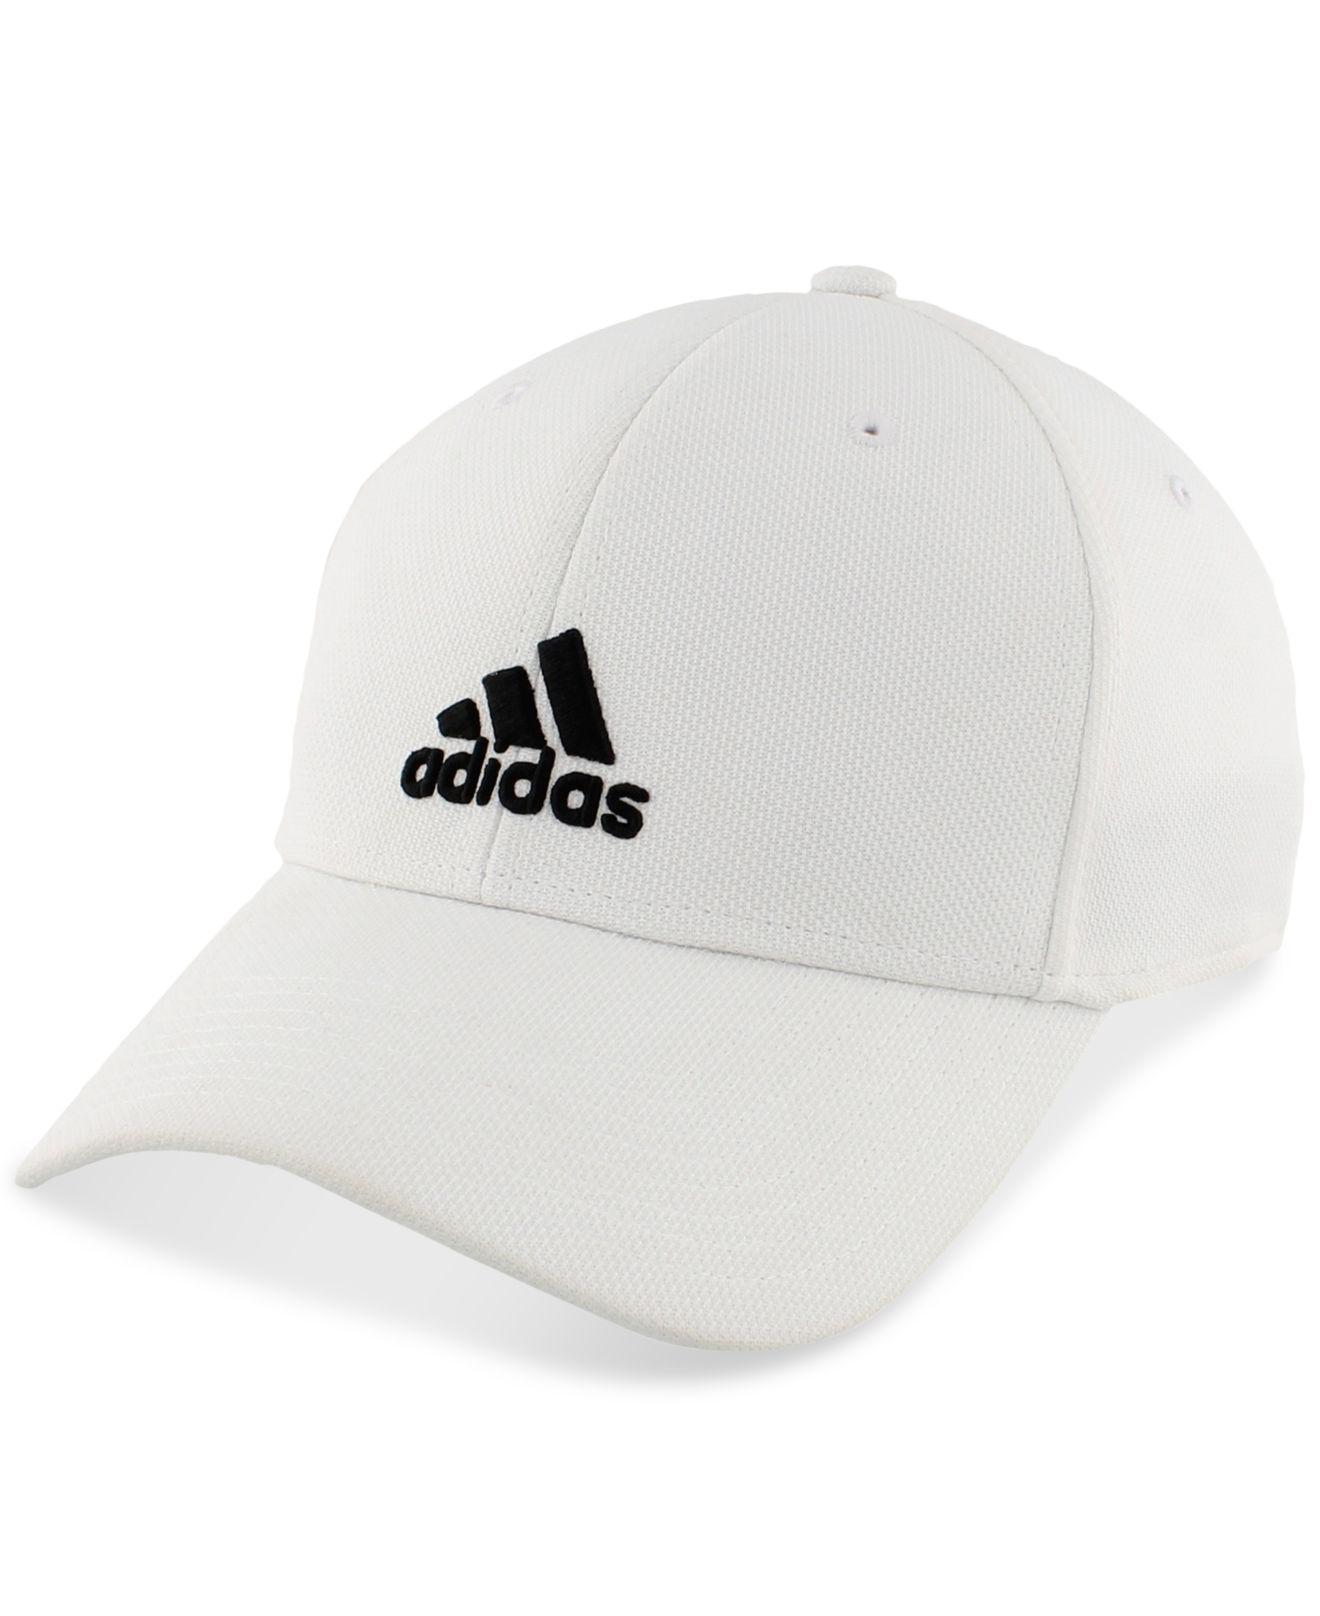 Lyst - adidas Climalite® Stretch Rucker Hat in White for Men d90d9292e0c